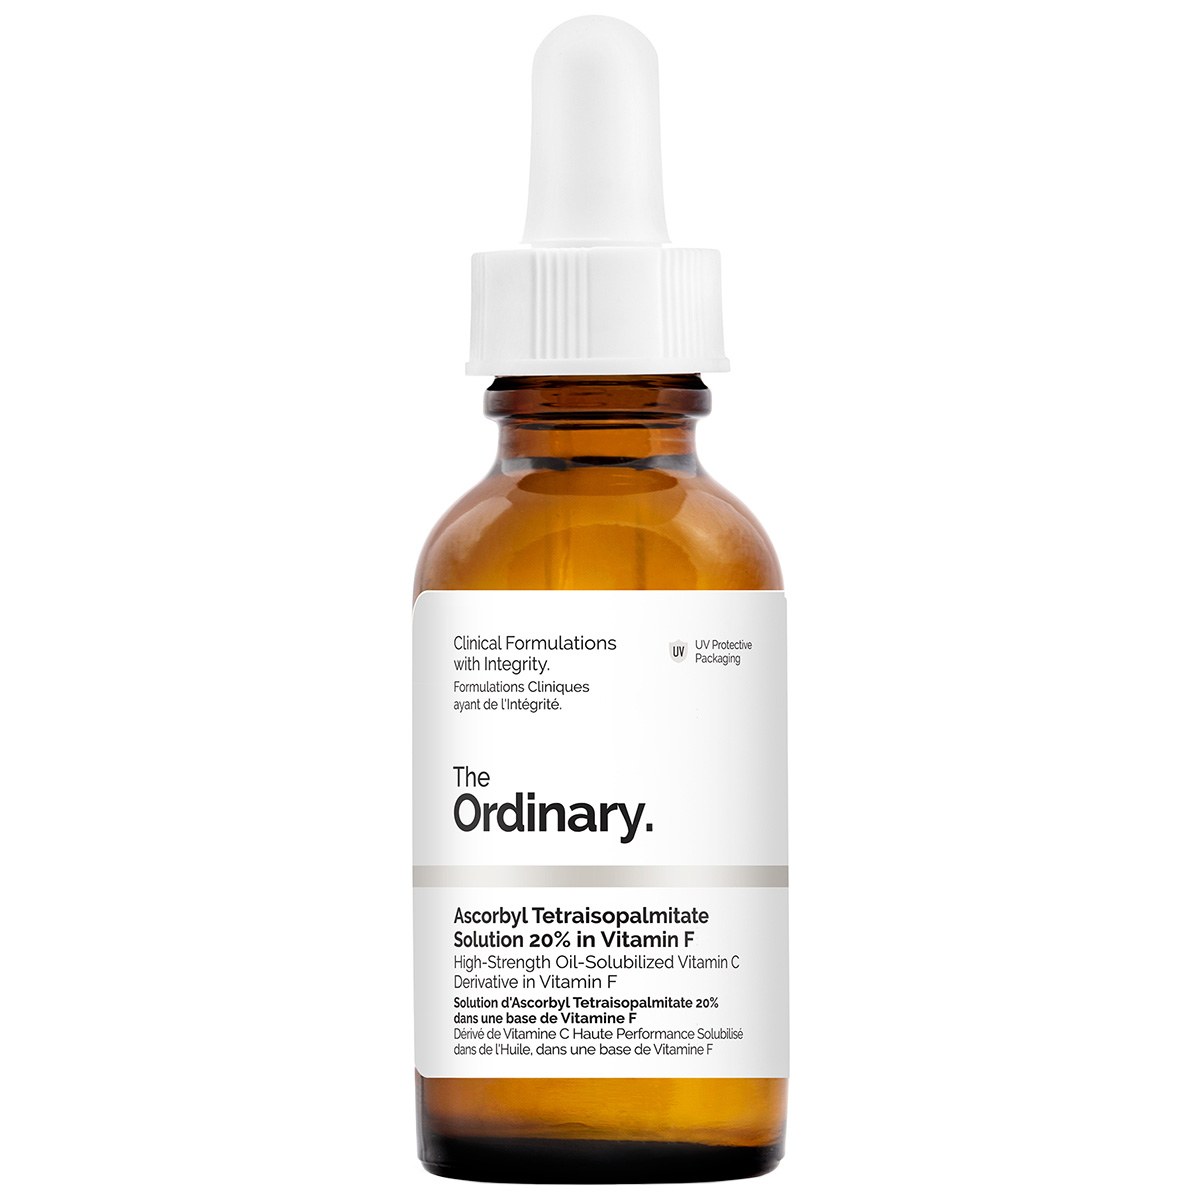 The Ordinary Ascorbyl Tetraisopalmitate Solution 20% in Vitamin F